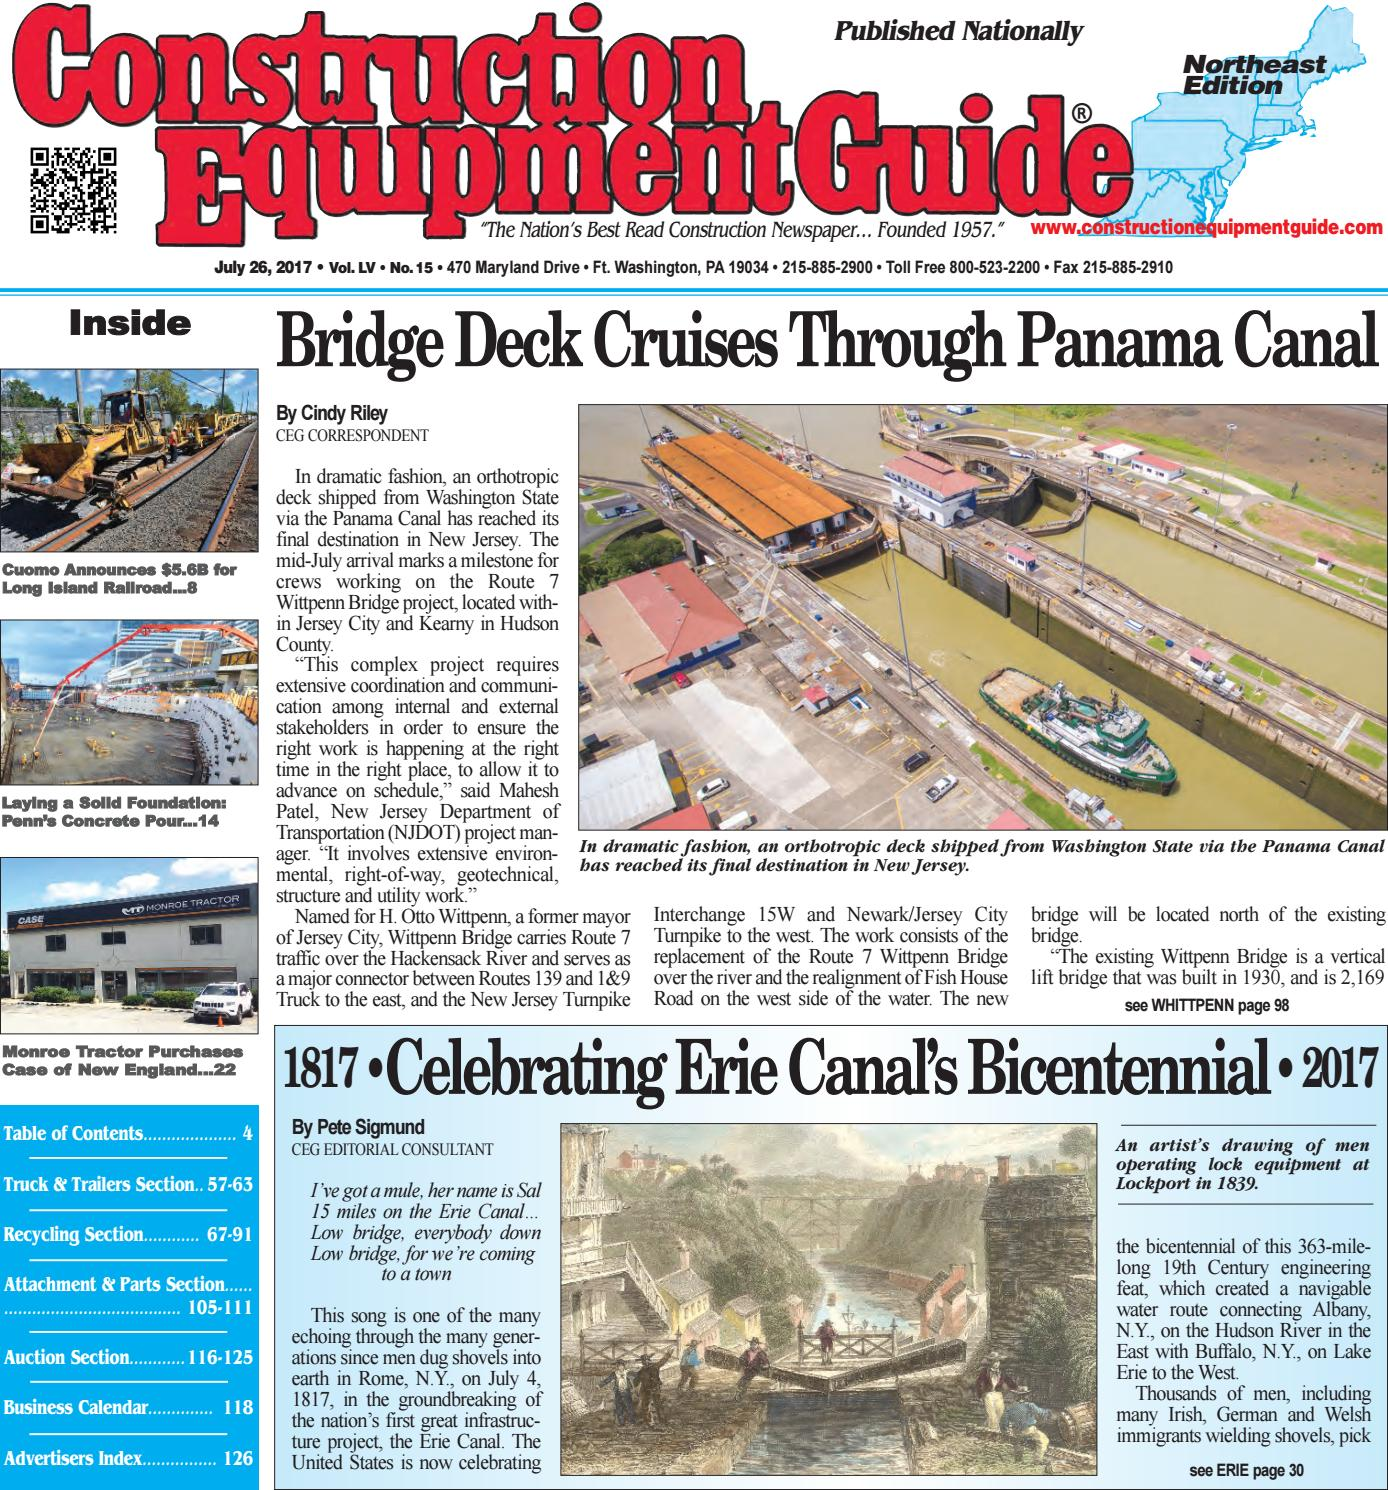 northeast 15 july 26 2017 by construction equipment guide issuu